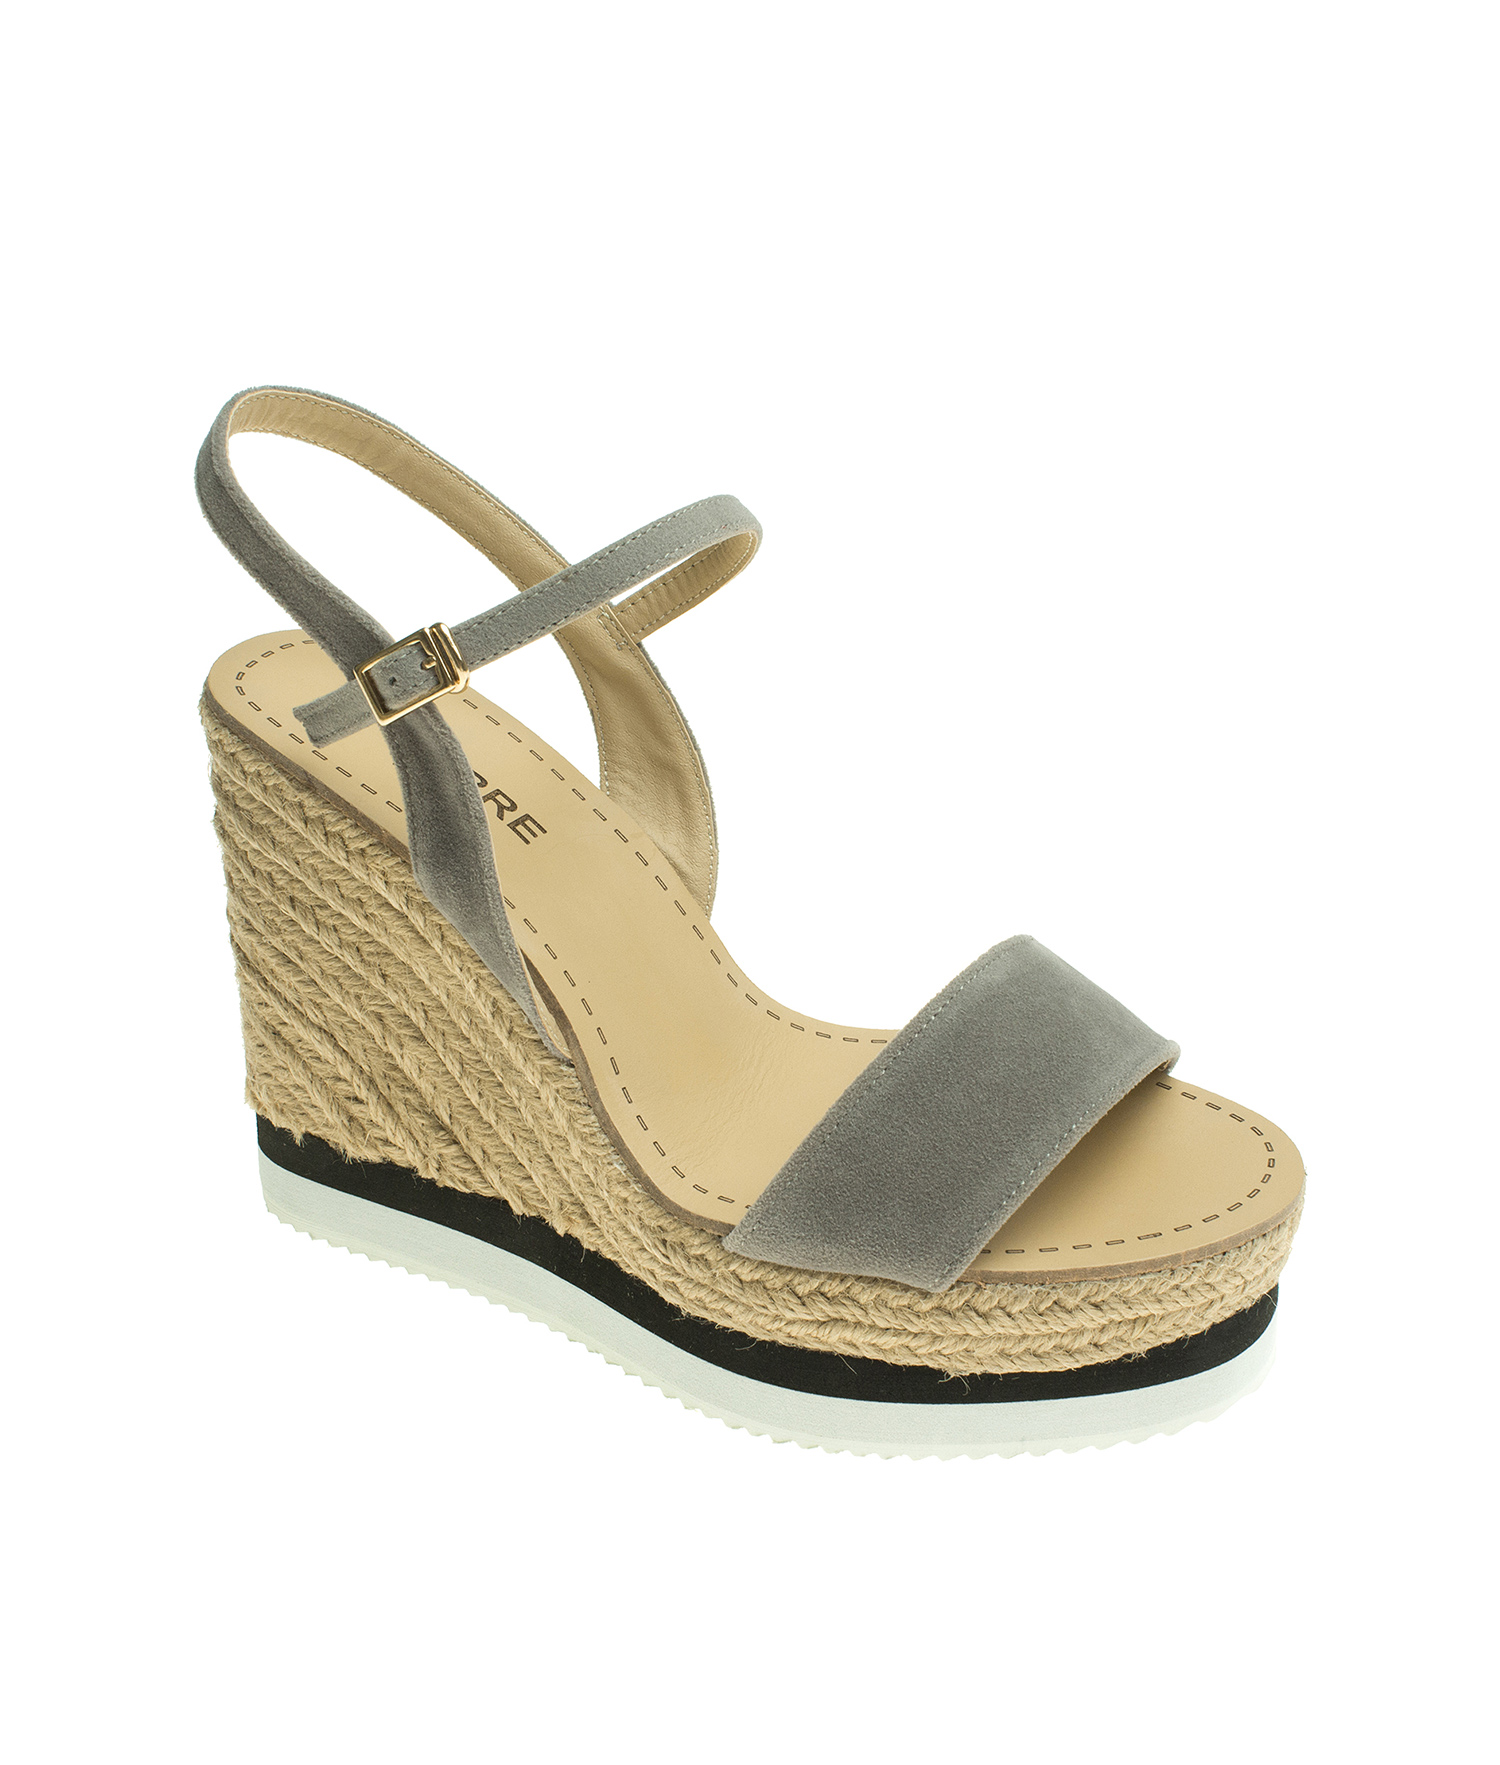 ce72d0f5c65 Suede Ankle Strap Espadrille Wedge Sandal